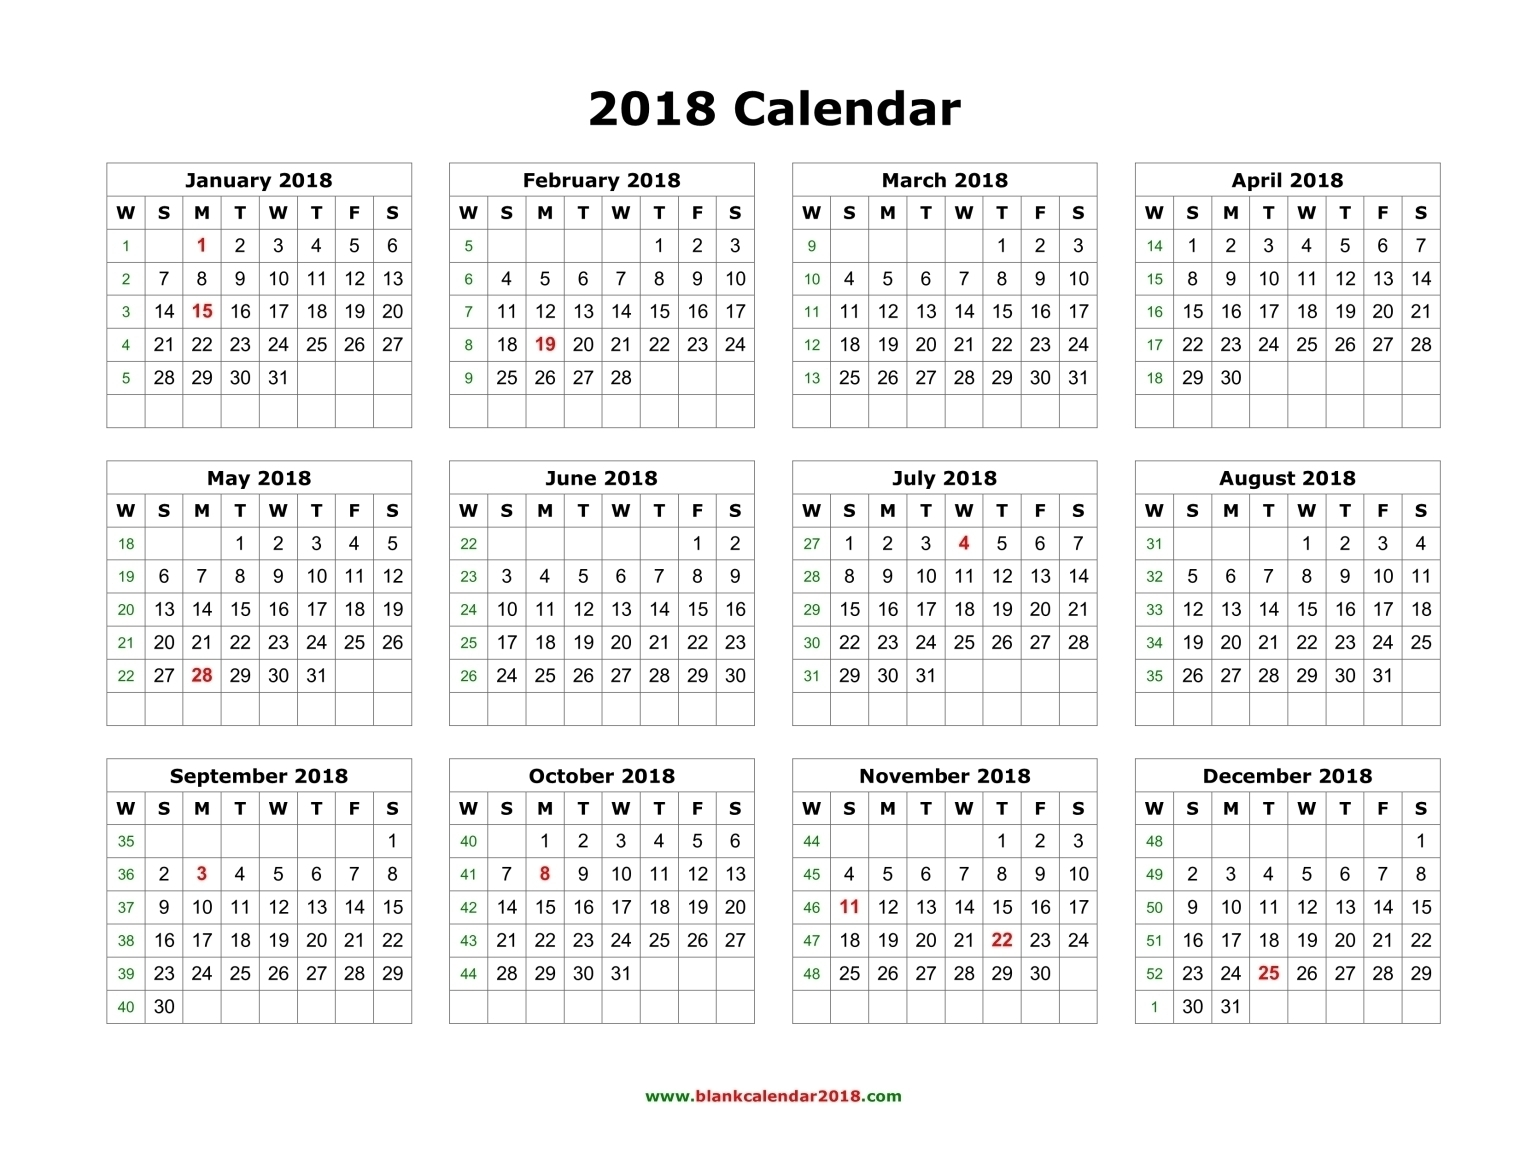 Printable Calendar 2018 Year View | Printable Calendar 2019 intended for Year At A View Calendar